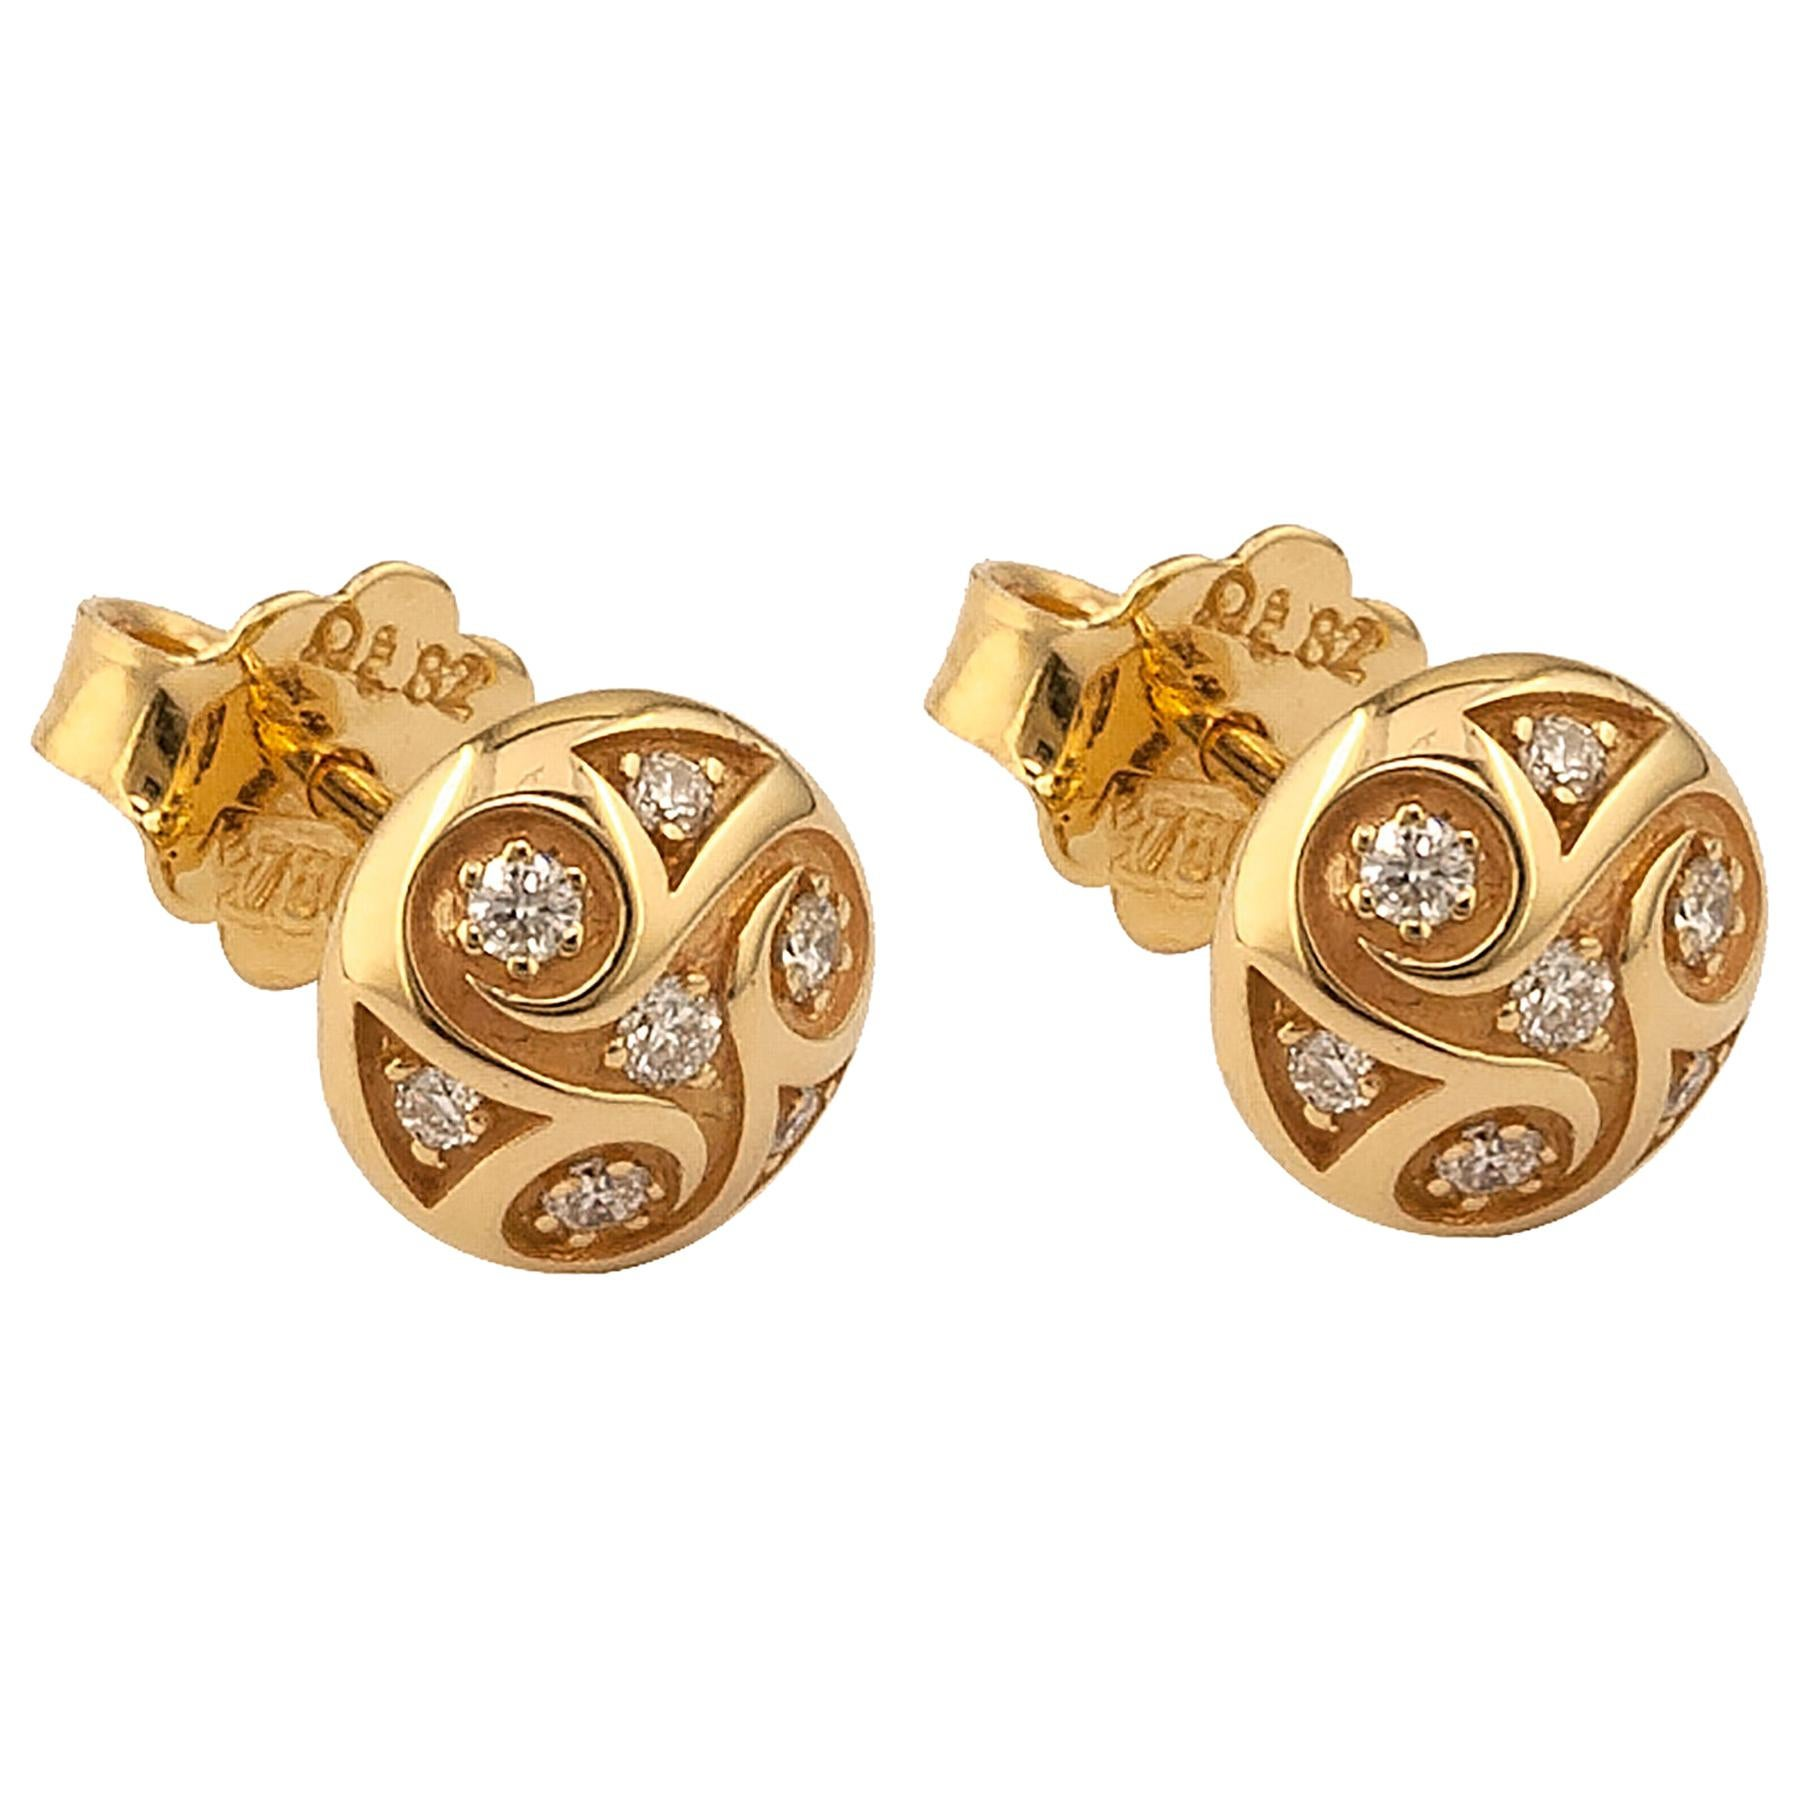 Georgios Collections 18 Karat Yellow Gold Solitaire Diamond Round Stud Earrings